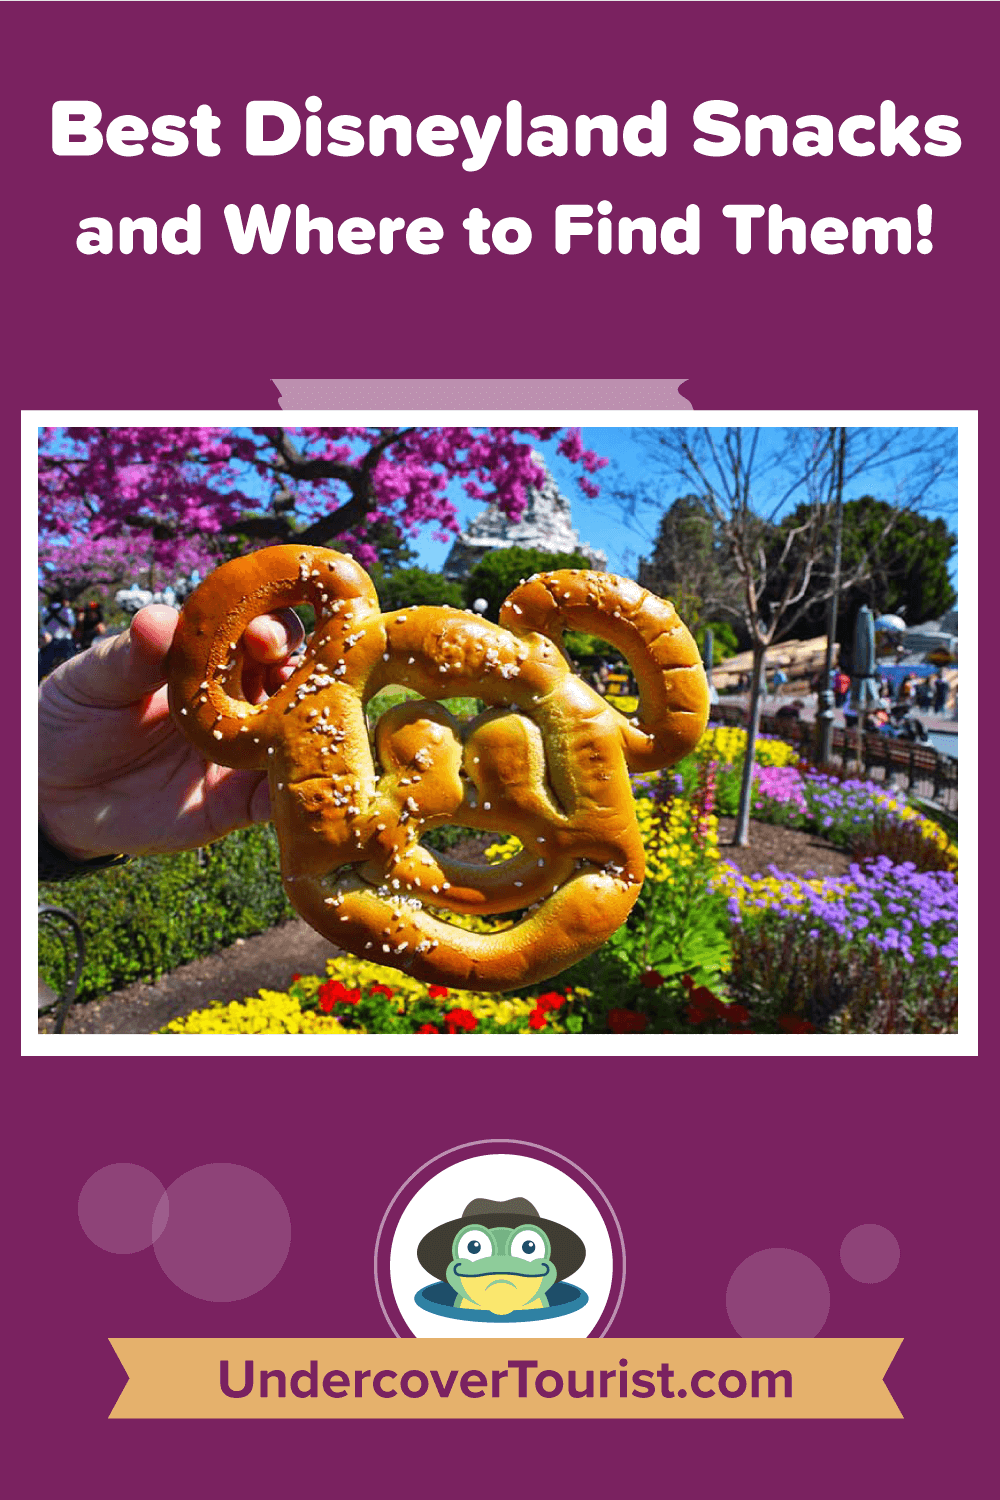 The Best Disneyland Snacks and Where to Find Them - Pinterest